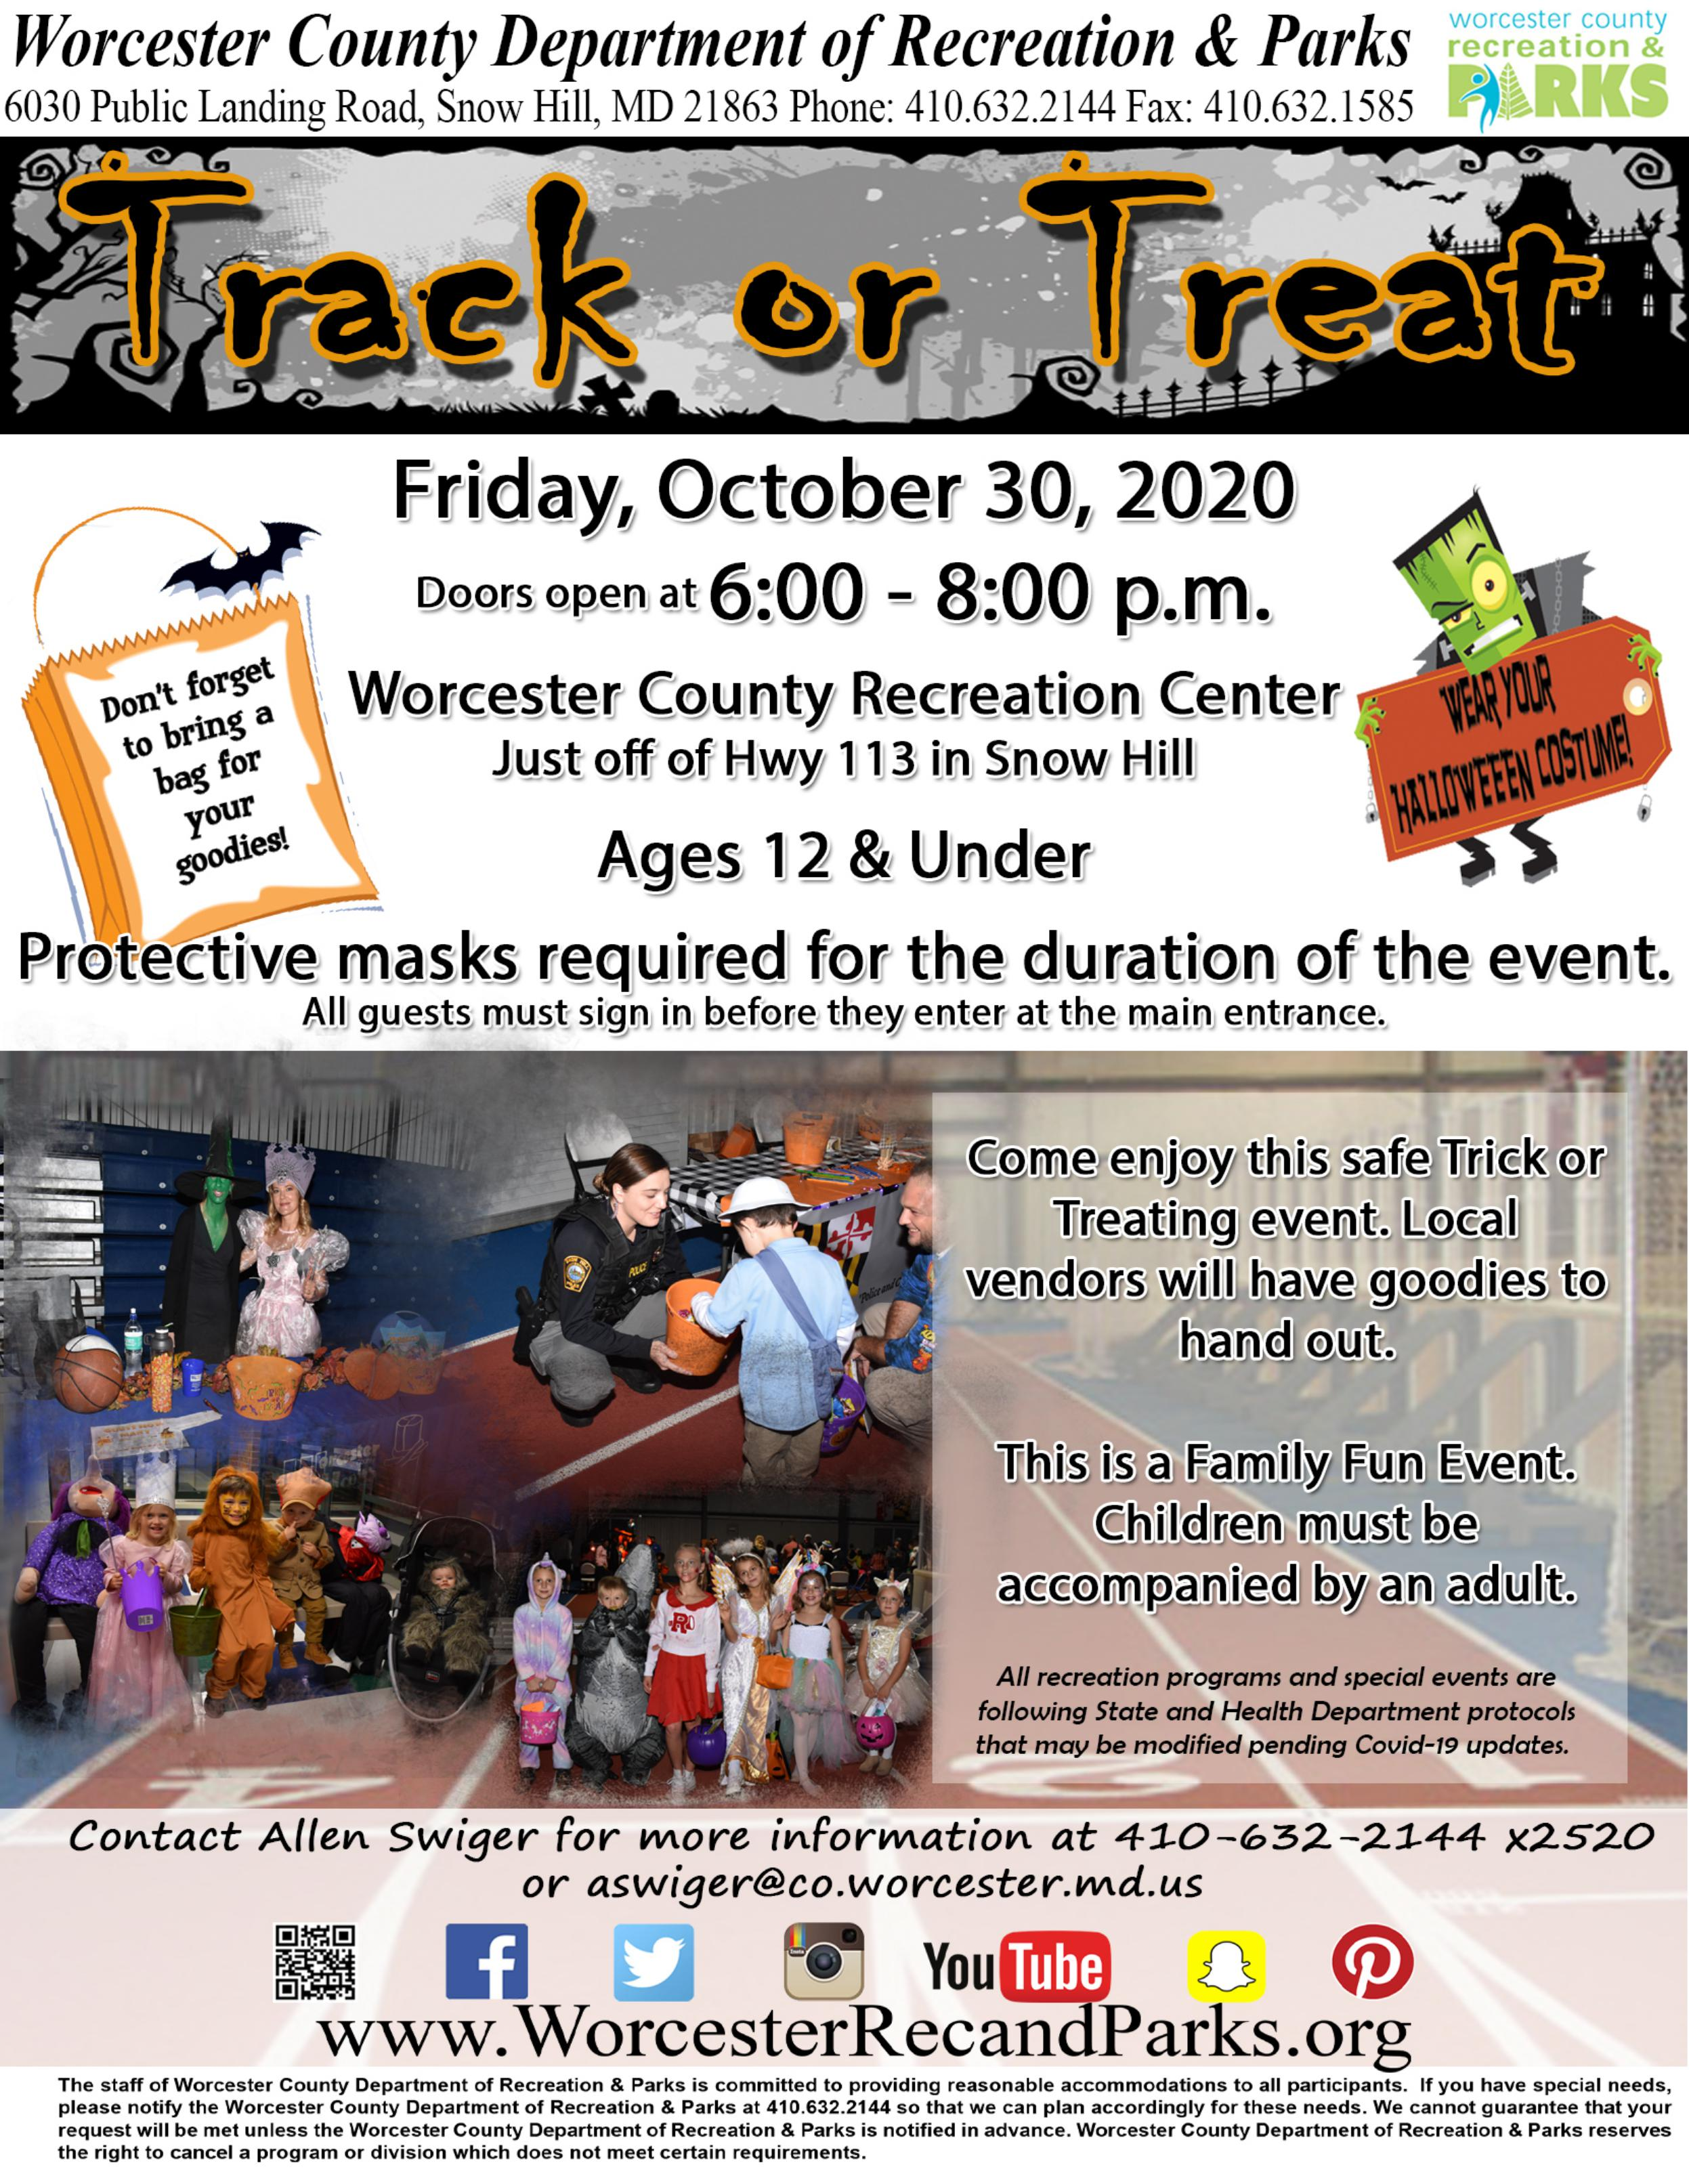 Worcester Halloween 2020 Worcester County Recreation and Parks putting on 'Track or Treat